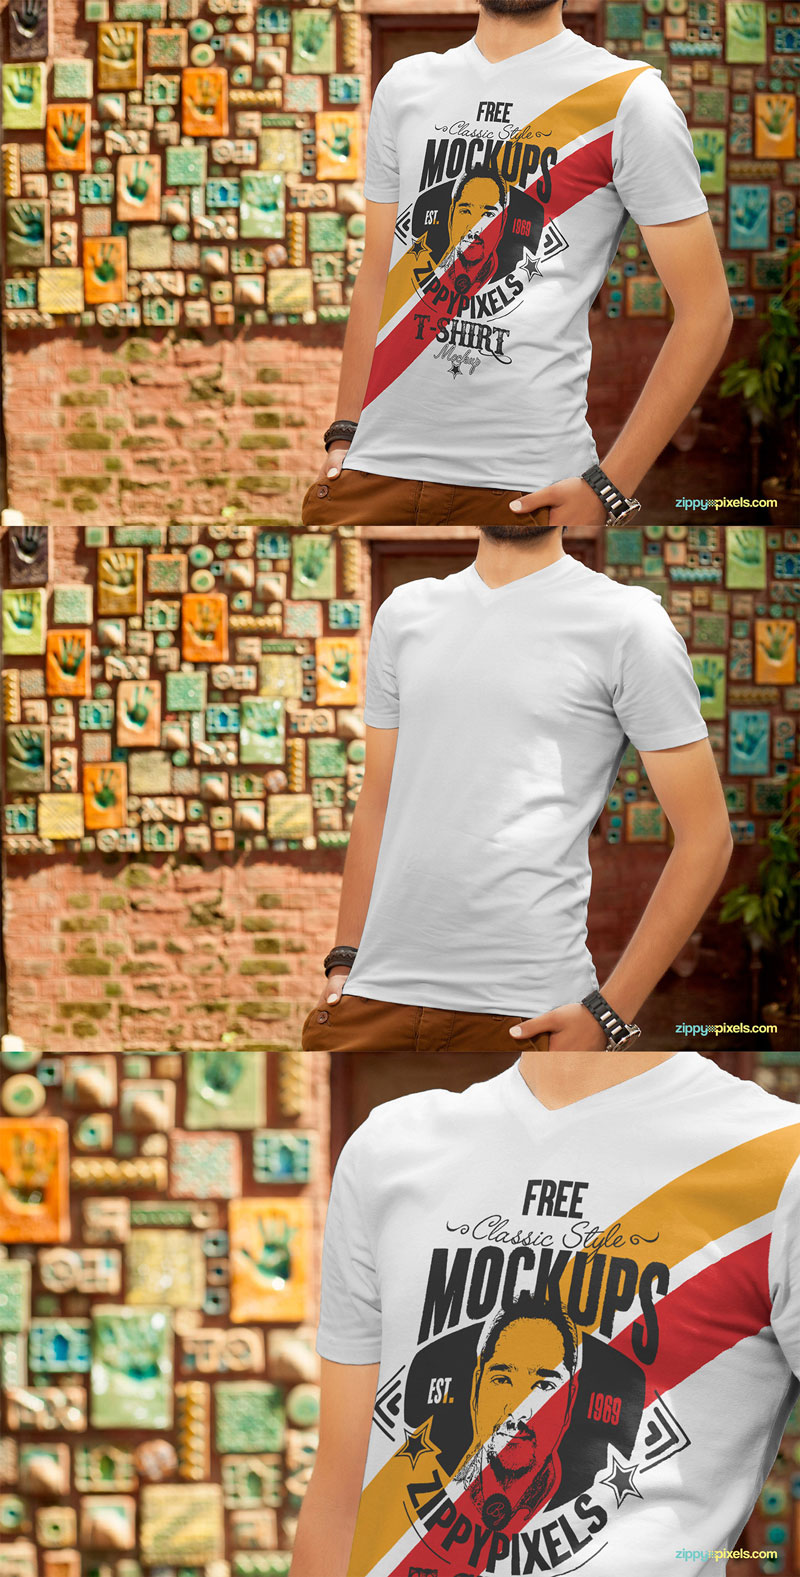 Free-Handsome-Boy-Wearing-T-Shirt-PSD-Mockup-2018